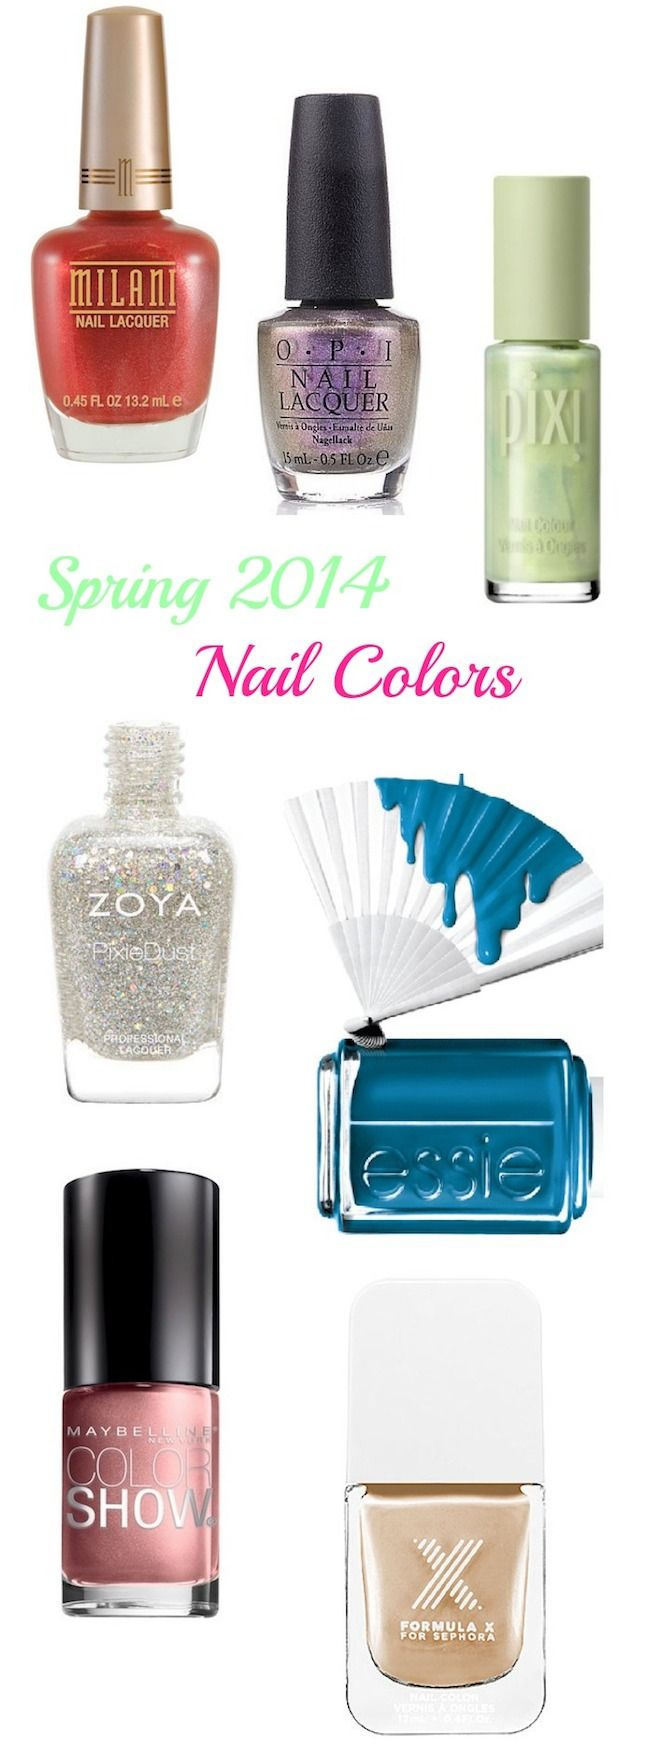 7 New Nail Polishes to Try for Spring   Hot nails, Spring nails and ...